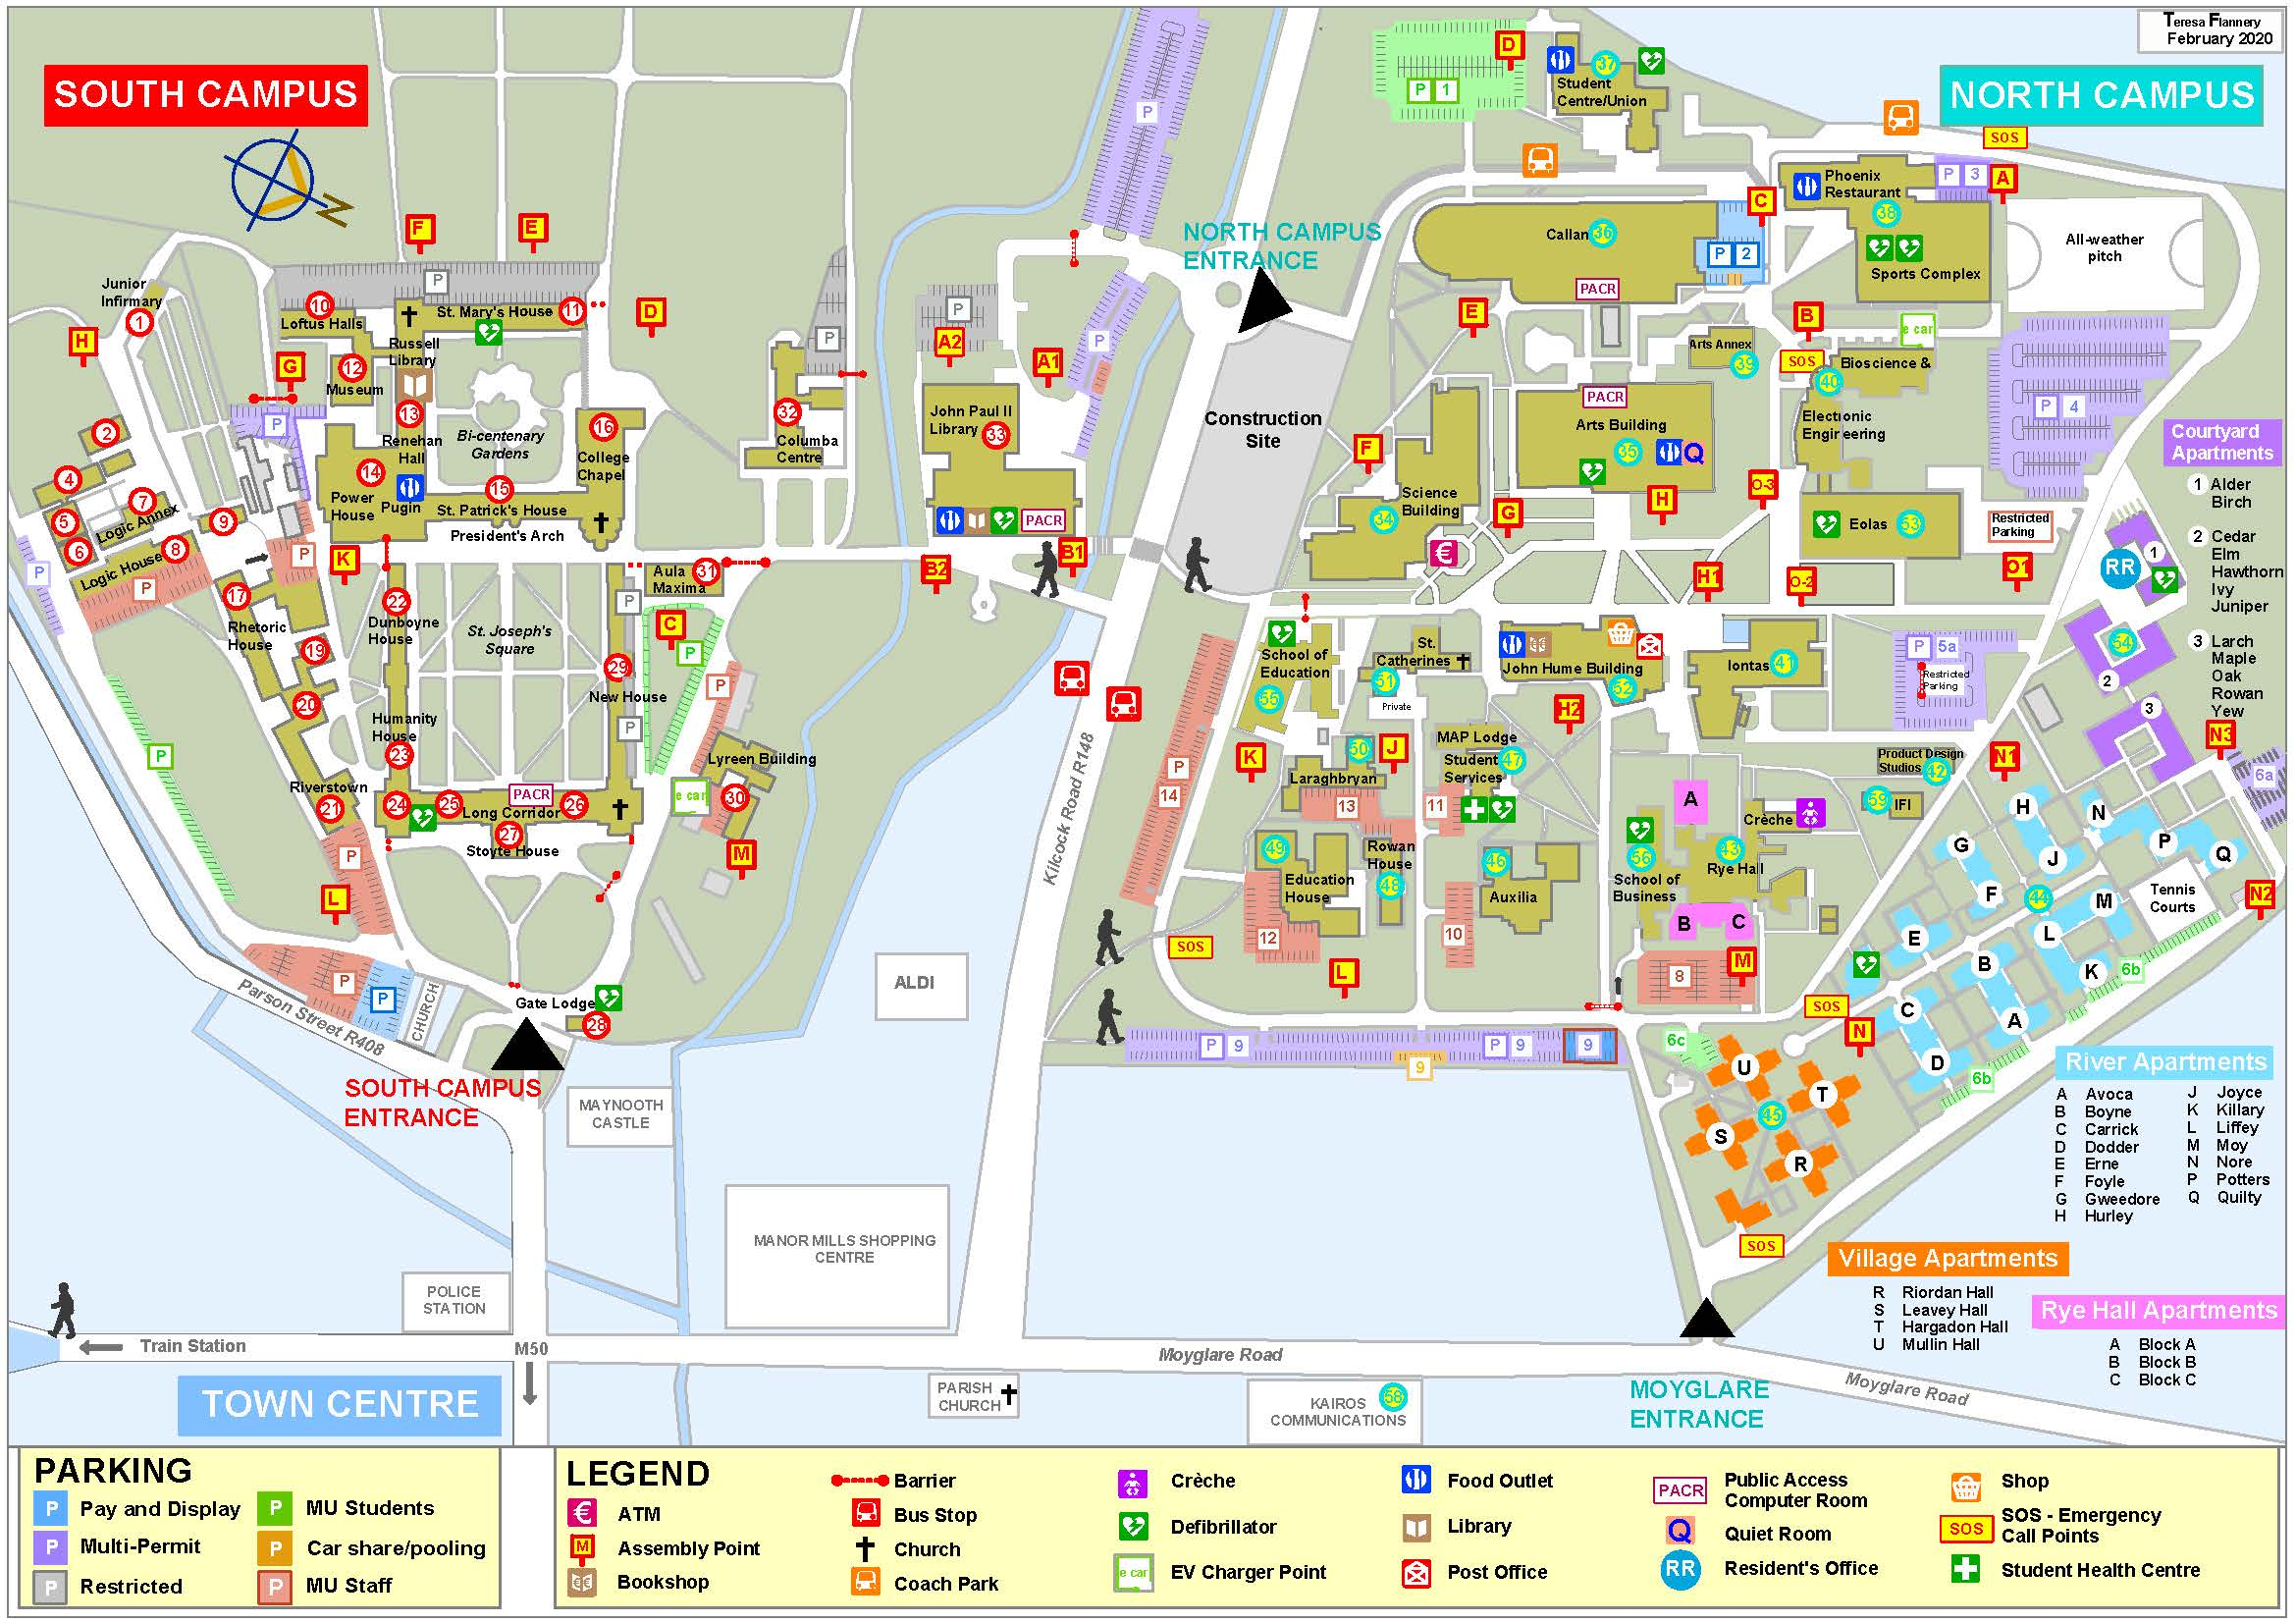 Maynooth University Campus Map